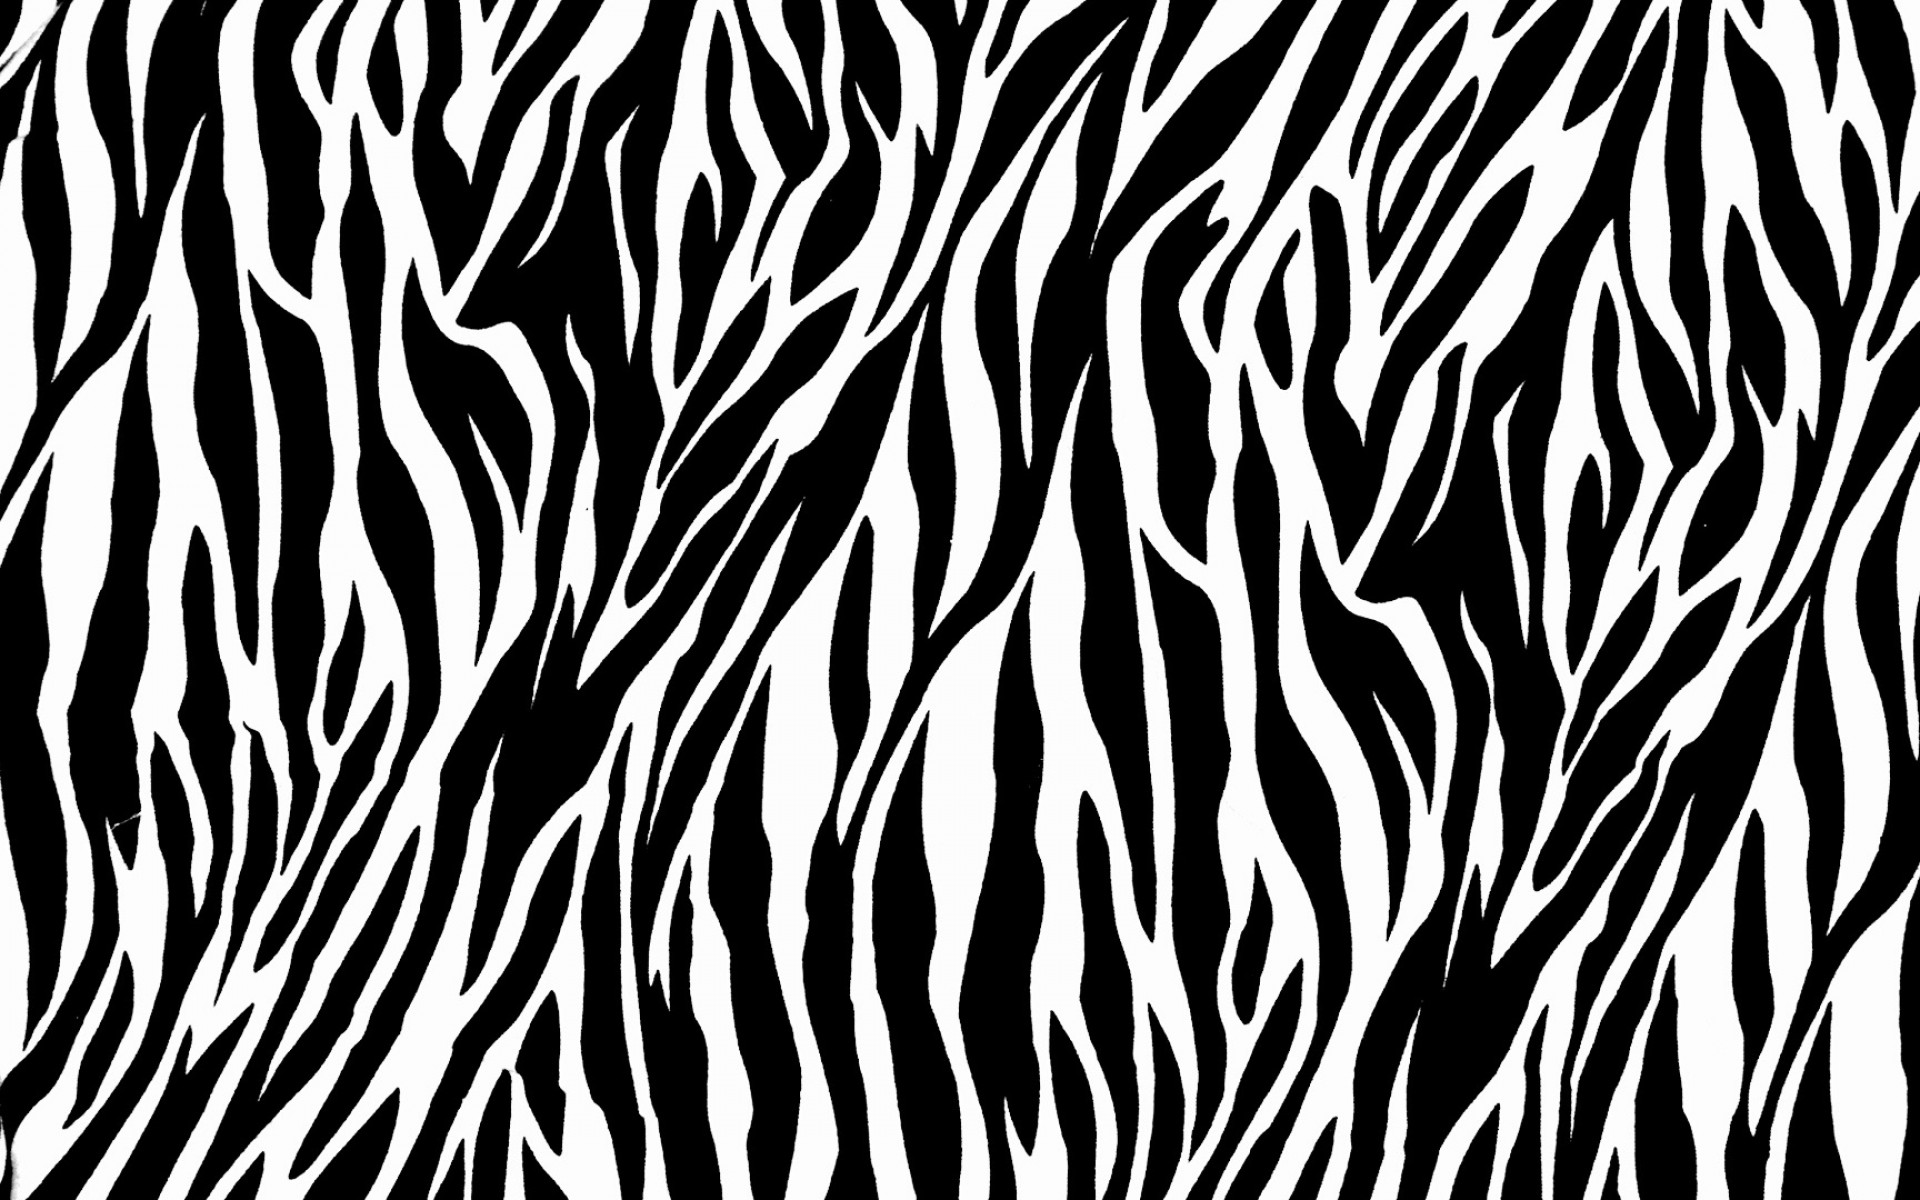 Zebra Print Pictures HD.